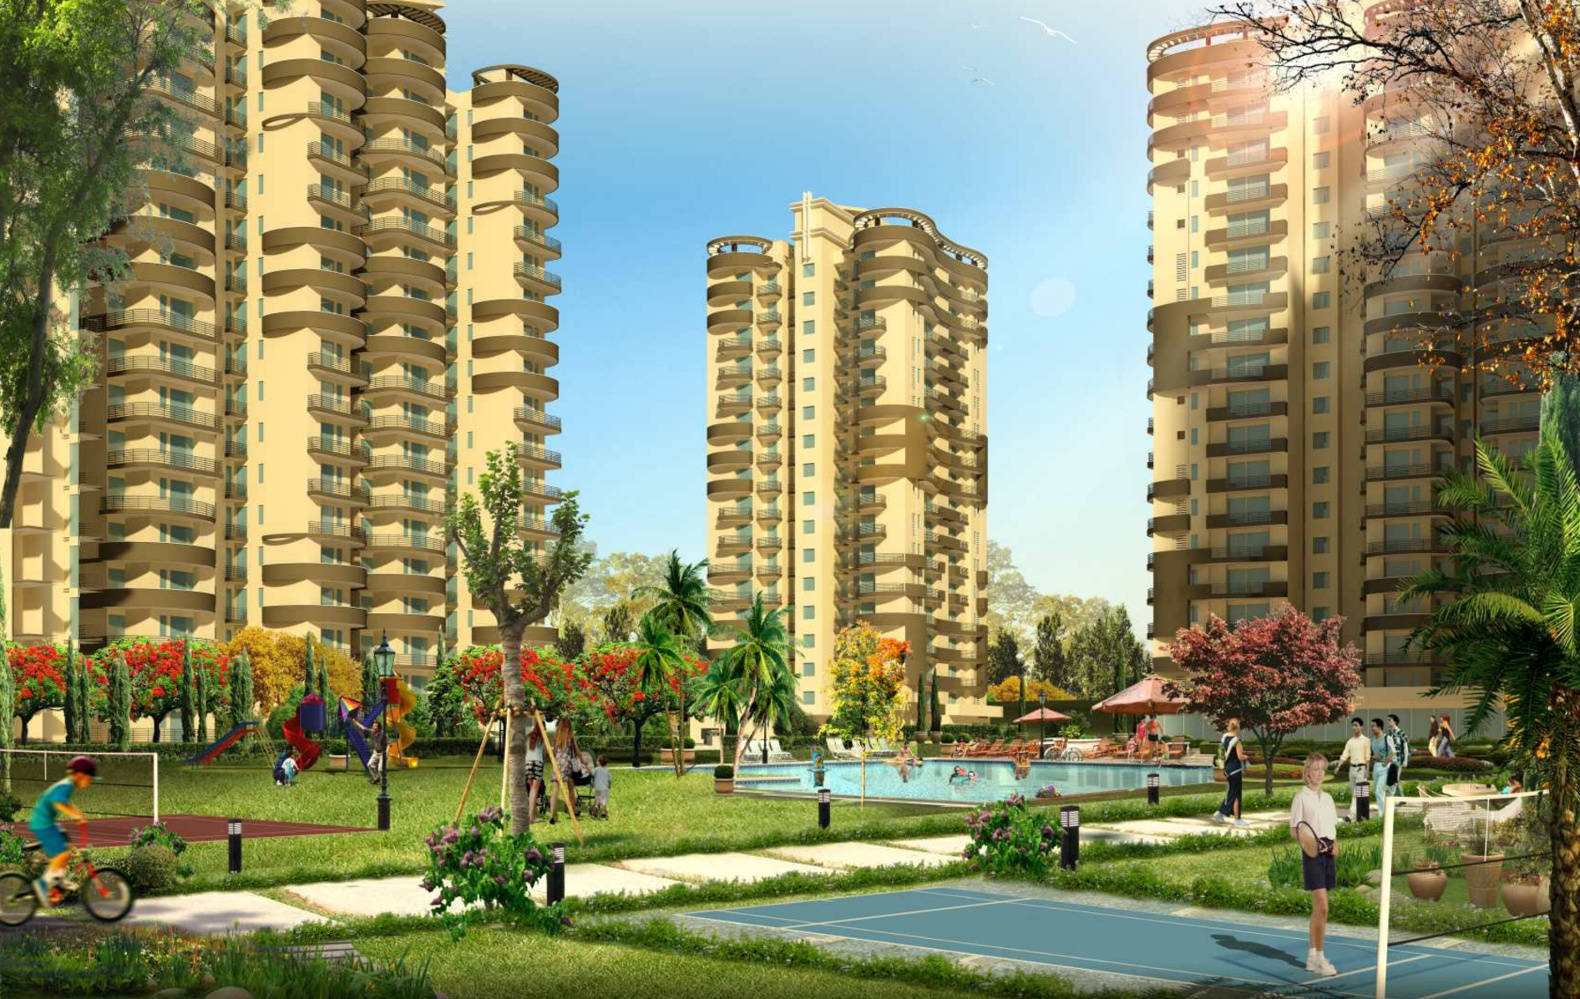 Victoryone Central, Victory Group, Victory Infraprojects, Victoryone Infraprojects, Sudhir Agarwal, Greater Noida West, Noida Extension, India real estate news, Indian realty news, Real estate news India, Indian property market, Track2Media Research, Track2Realty, Best news on Indian real estate